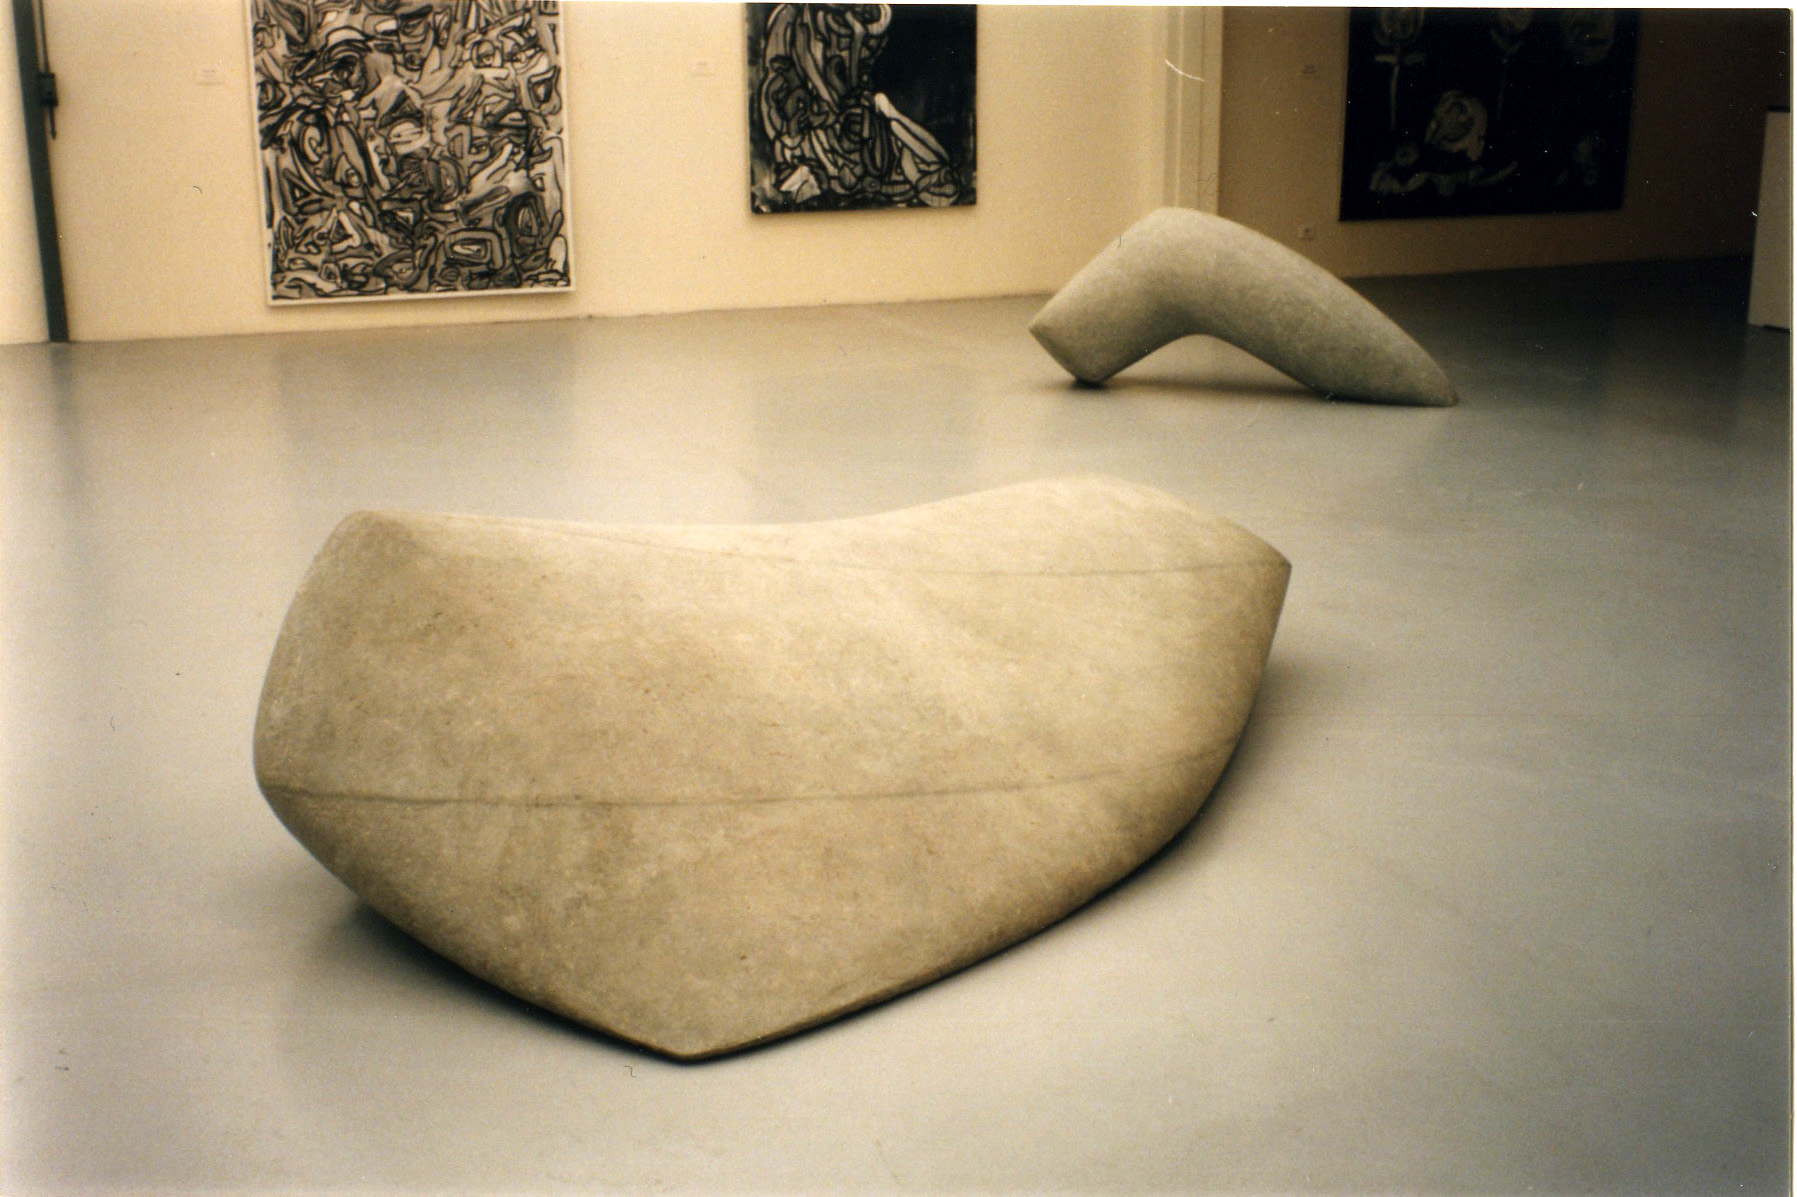 Exhibition view . 1998.                                                                  Fondation Coprim pour l'art contemporain. Paris